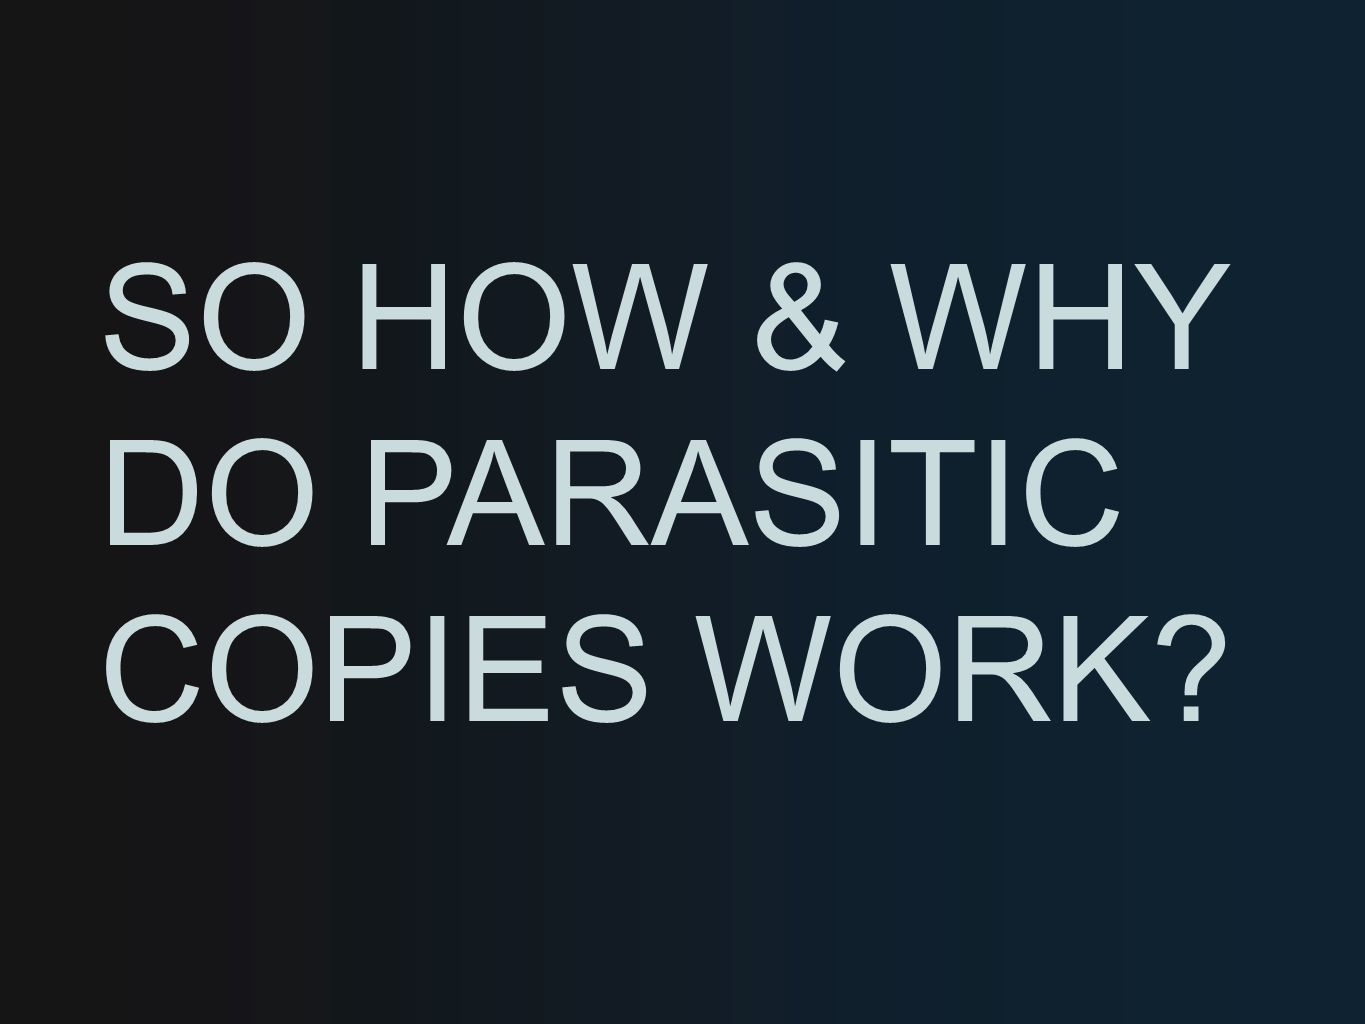 Parasitic copies unfairly divert sales from the original brand*.